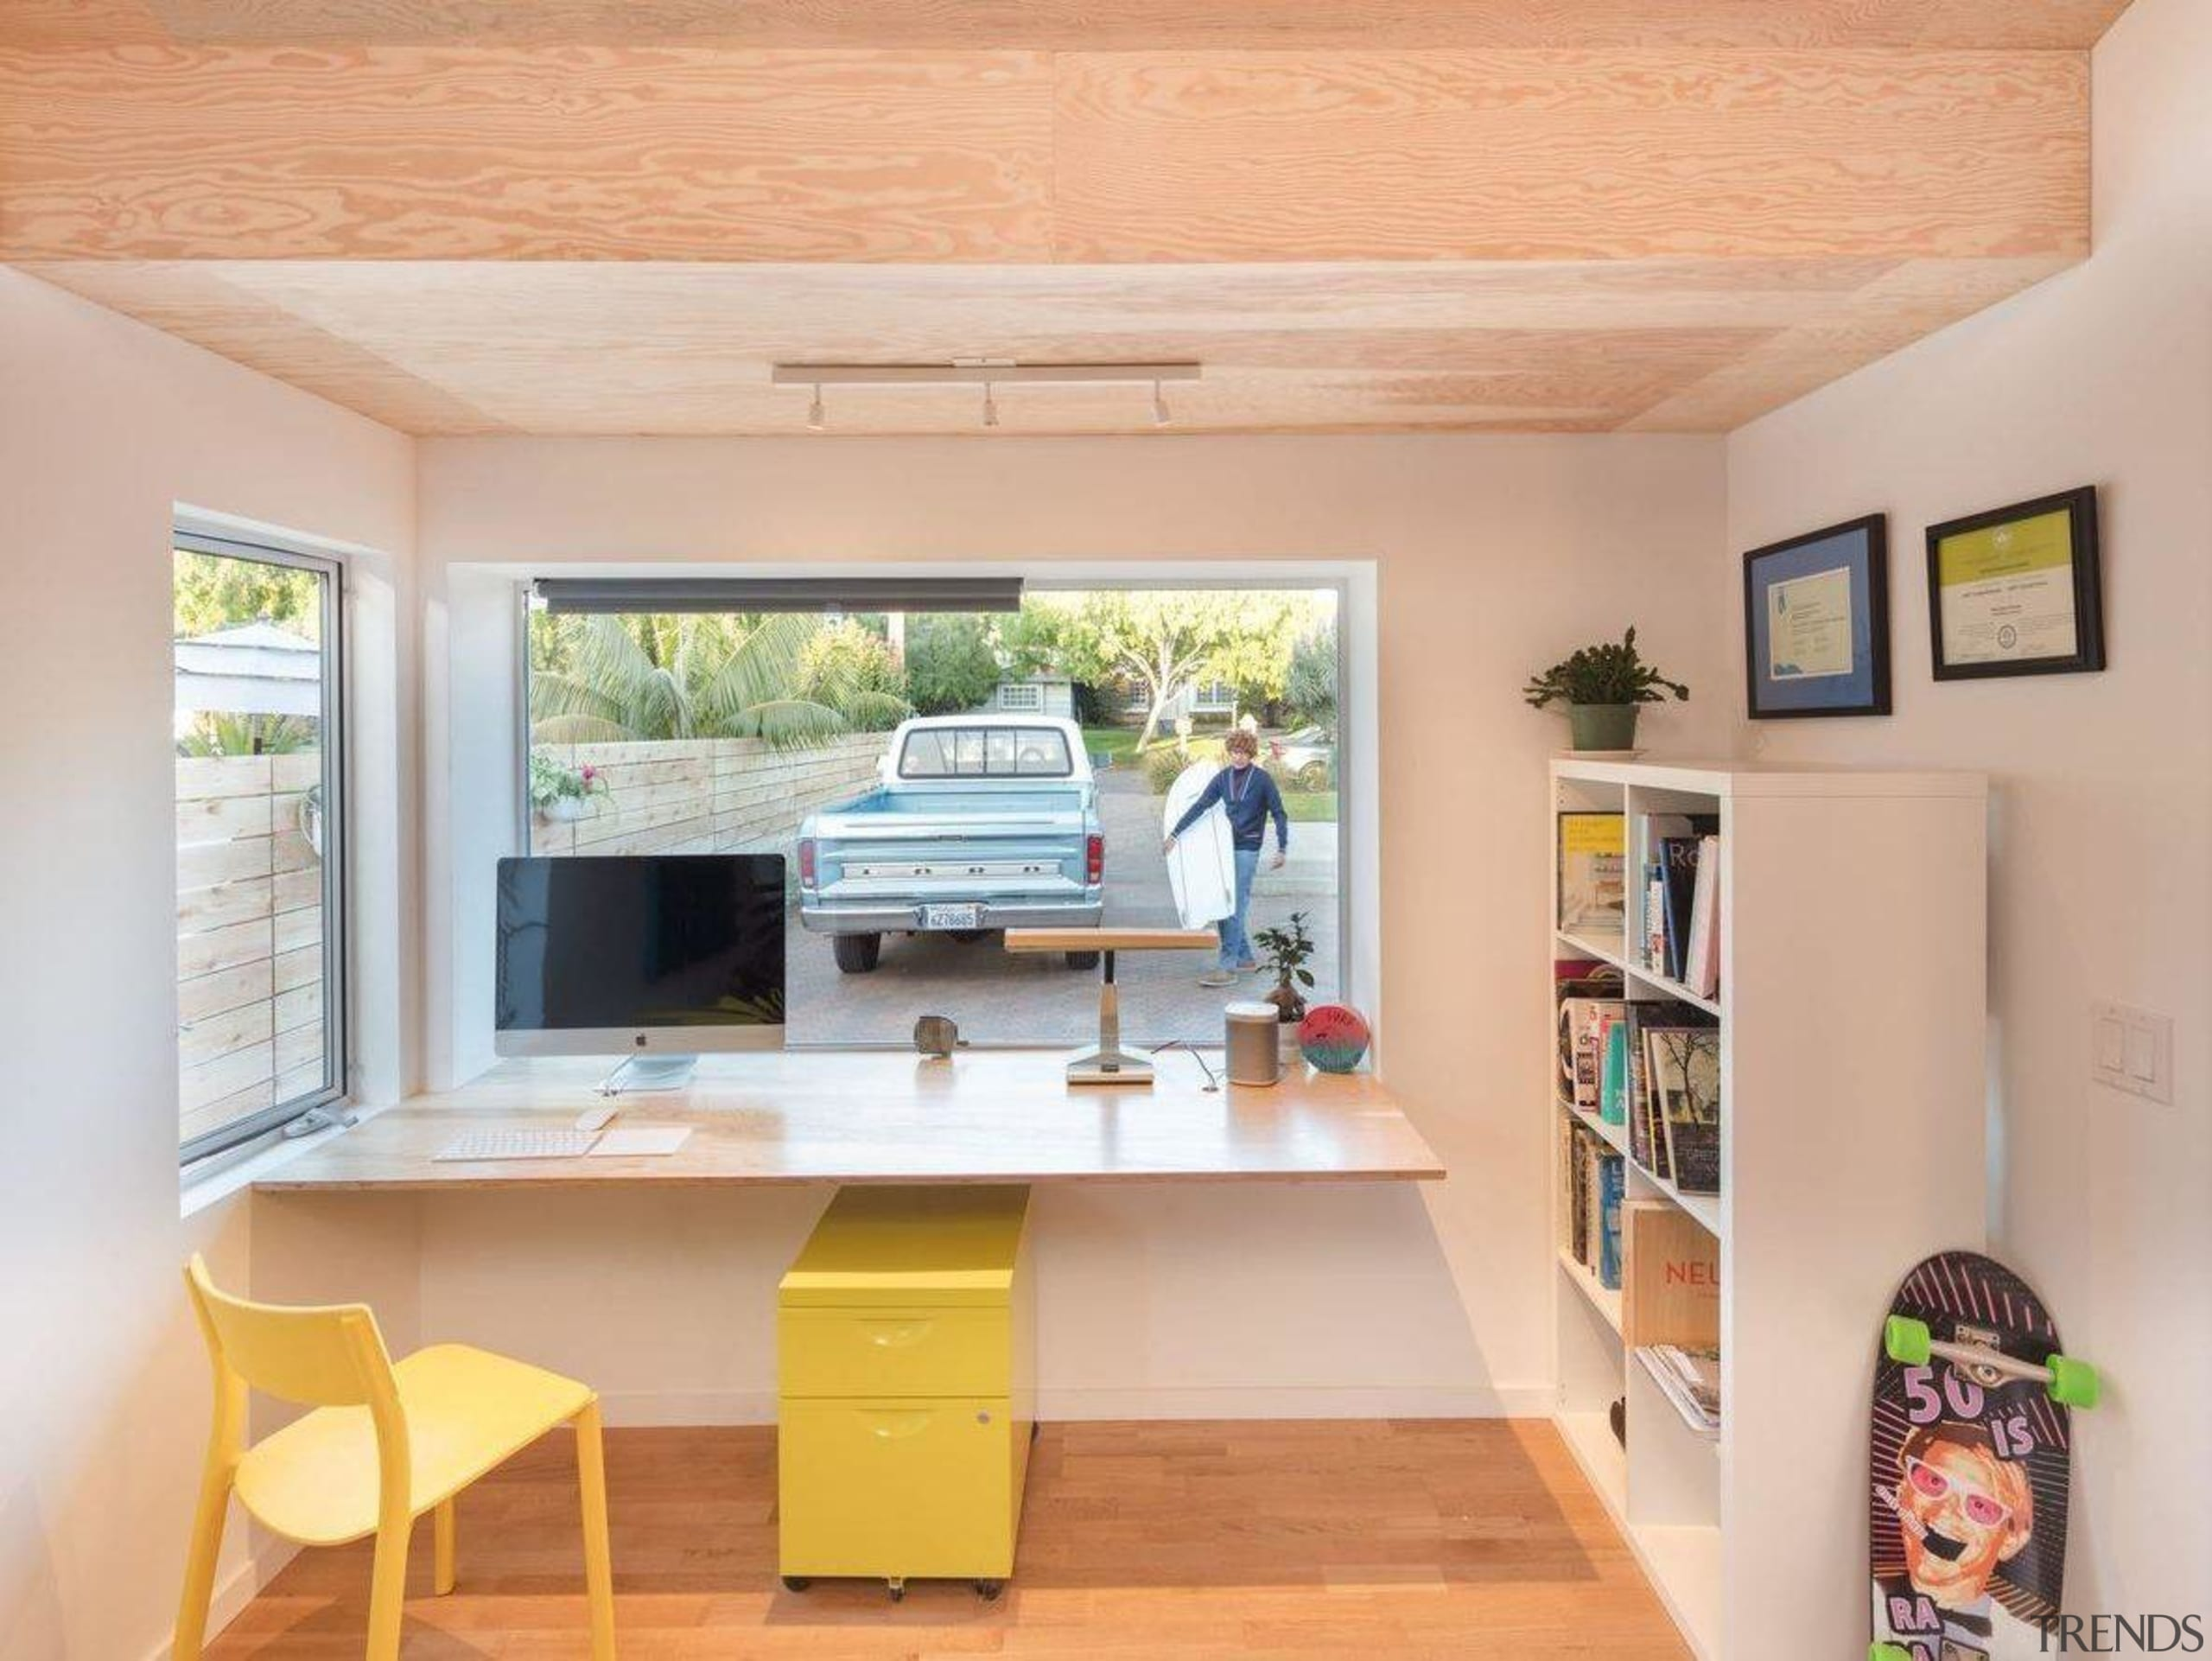 Architect: Surfside Projects. Photography by Darren Bradley building, ceiling, desk, floor, furniture, home, house, interior design, property, real estate, room, shelf, shelving, table, yellow, orange, gray